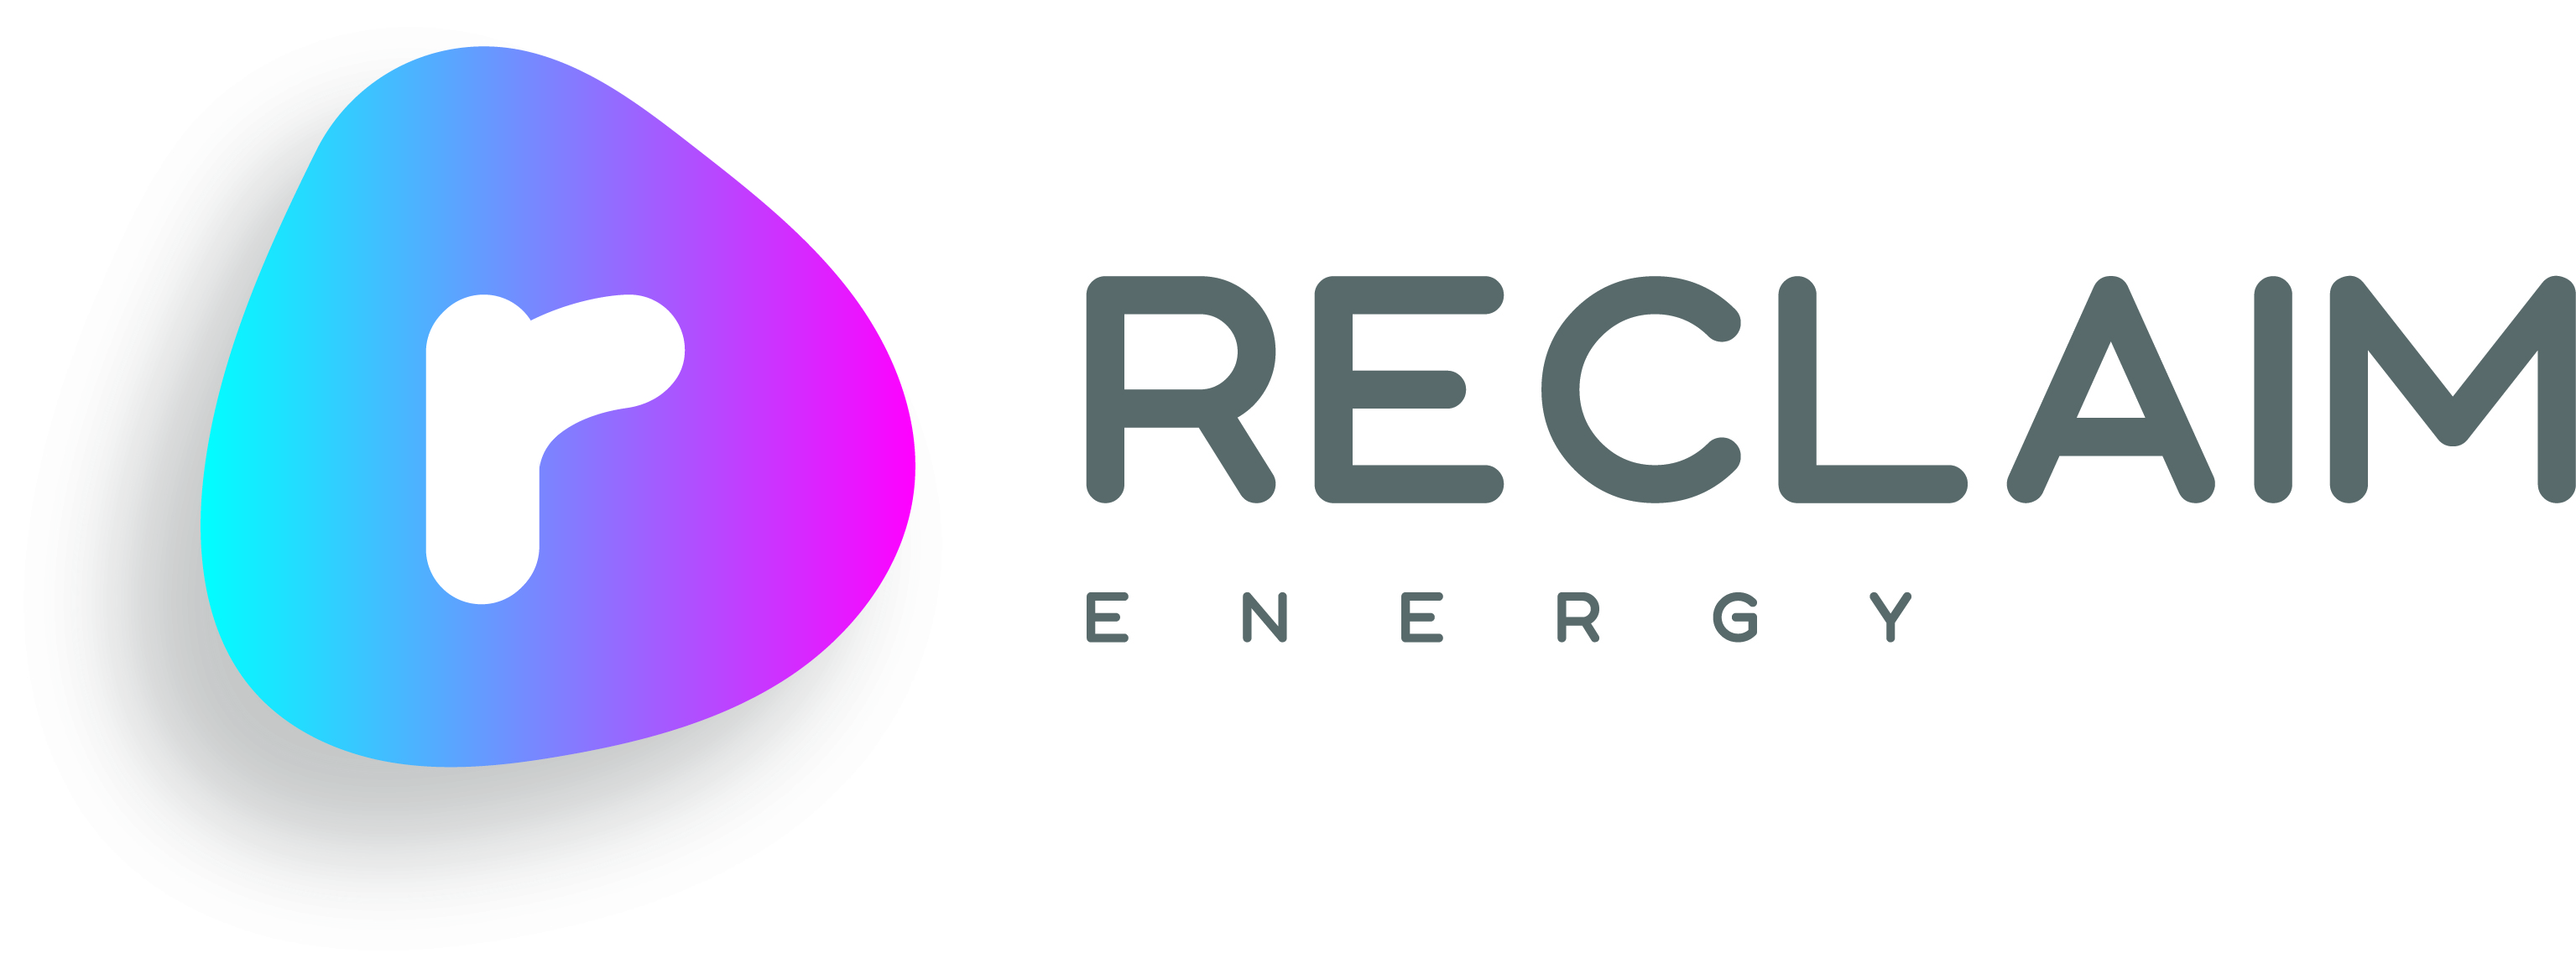 Reclaim Energy CO2 heat pump logo